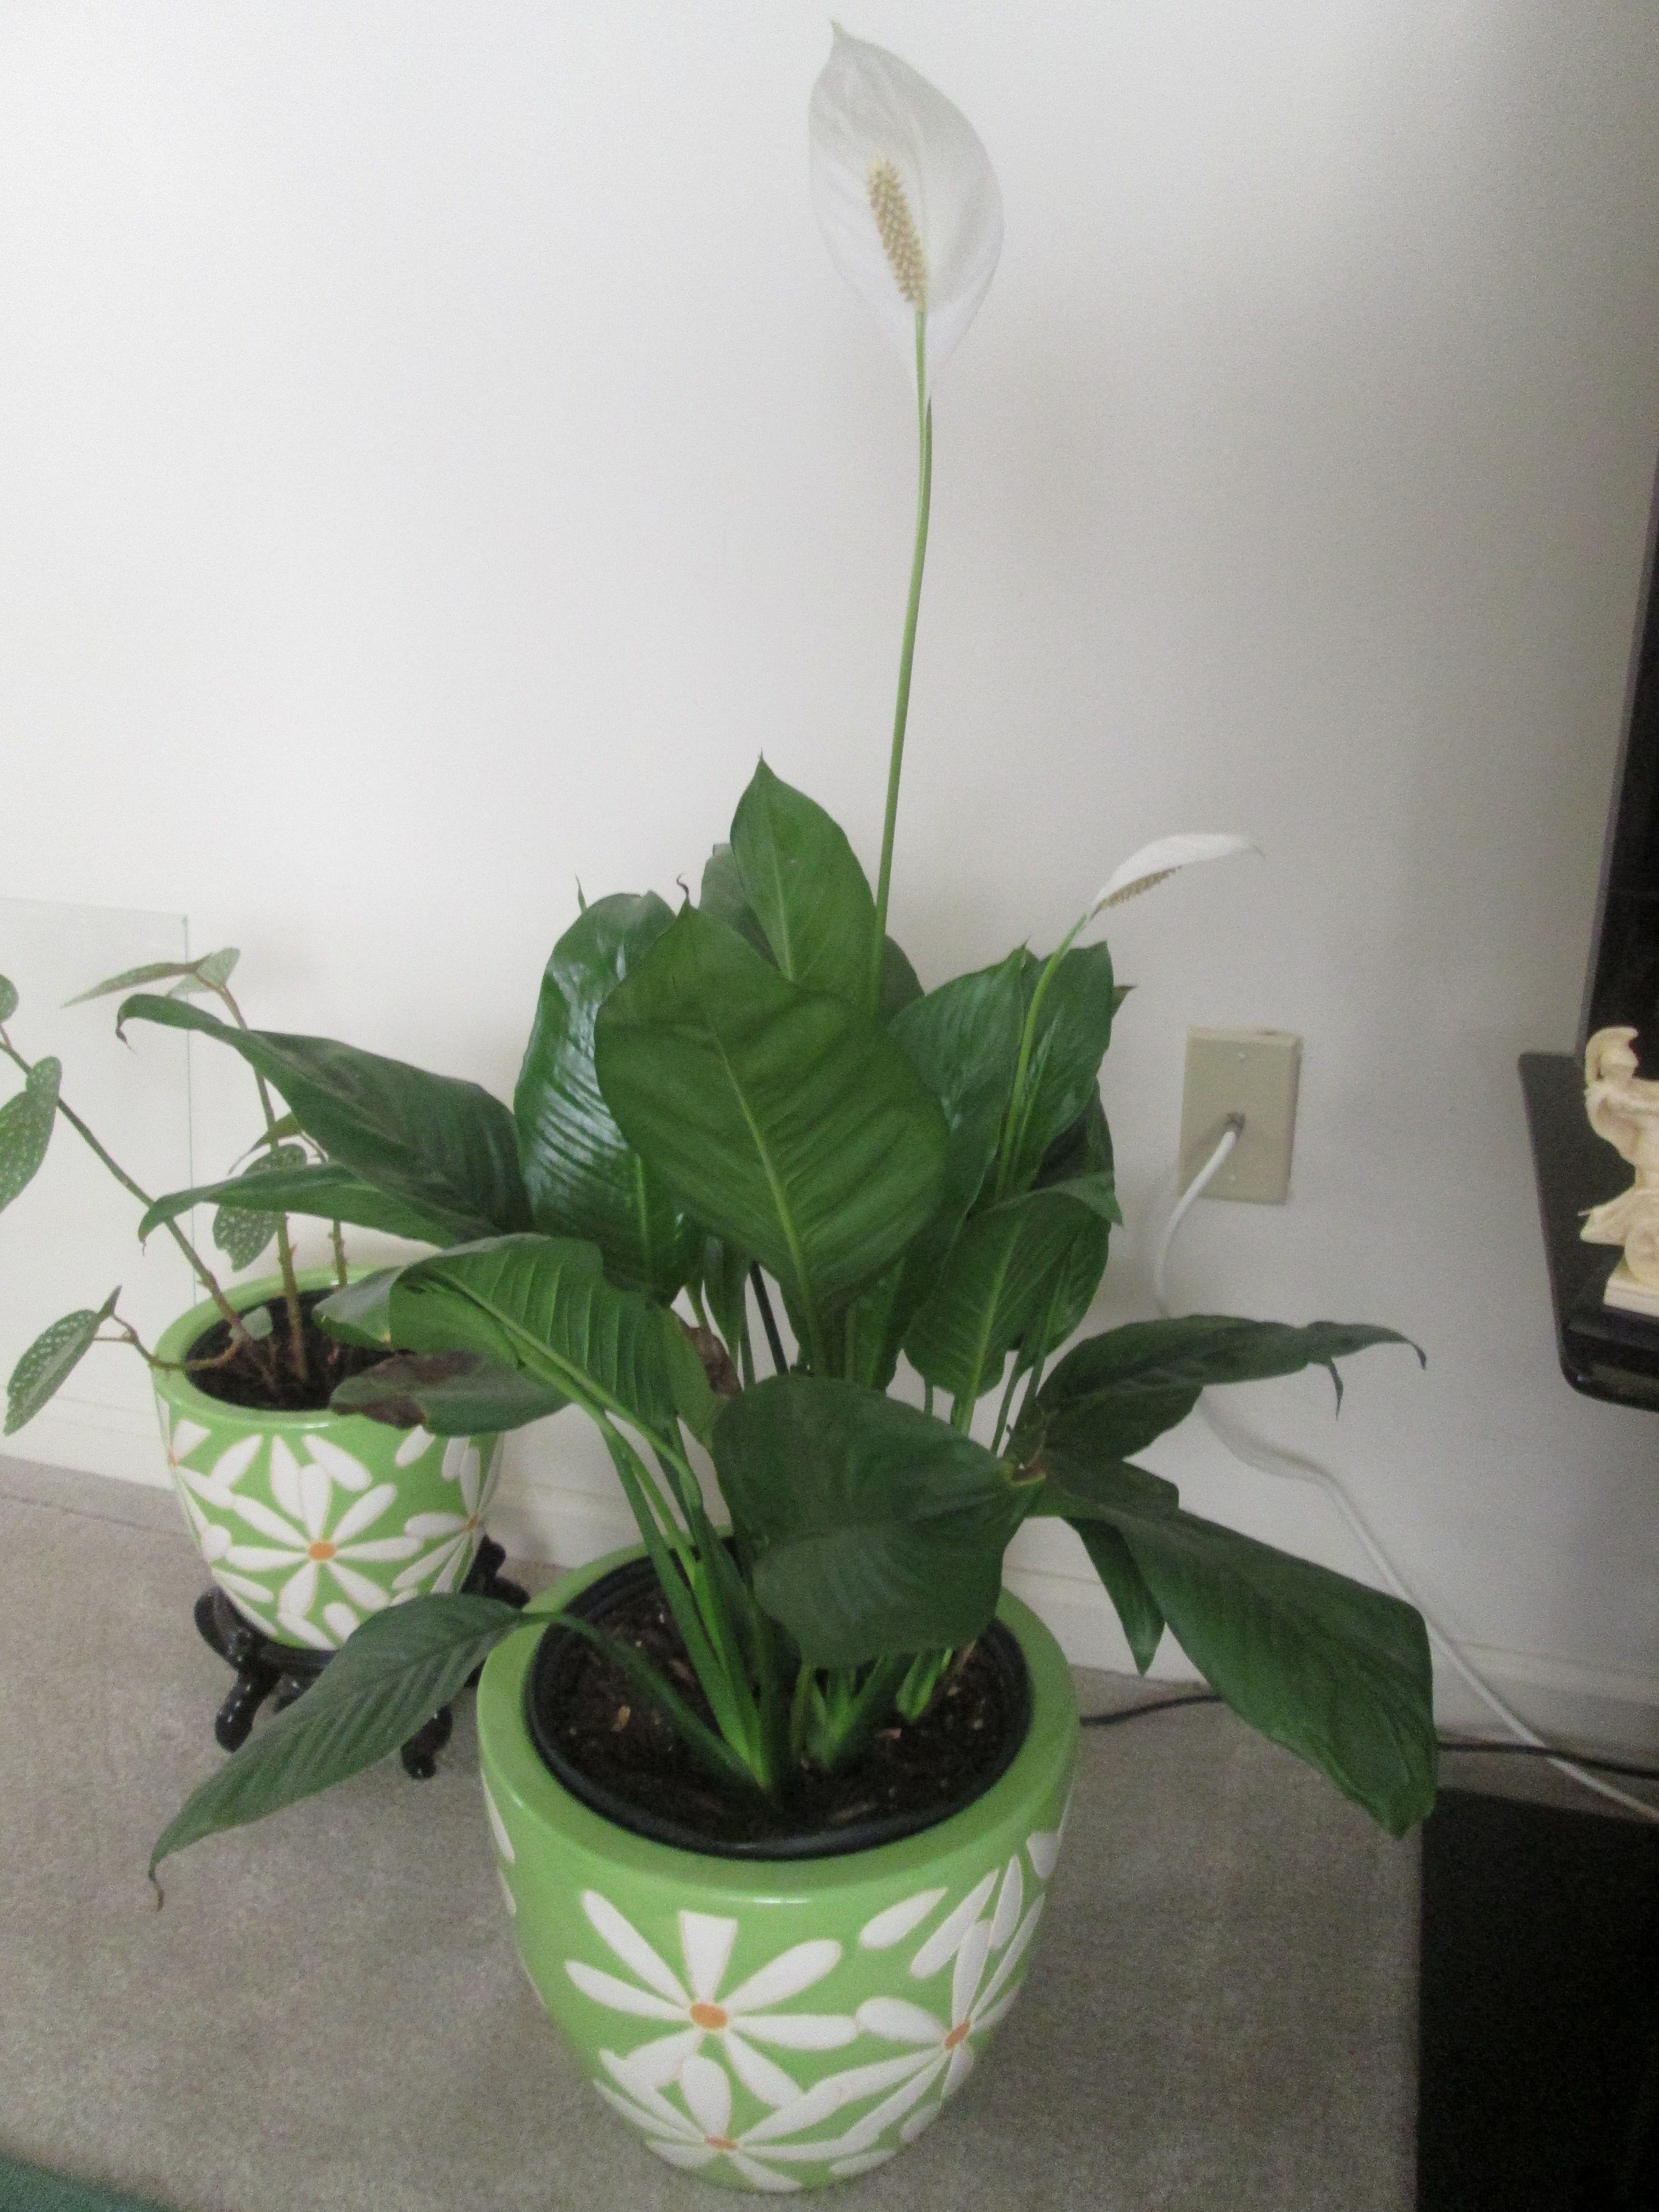 White flowers Peace Lily Spathiphyllum flowering